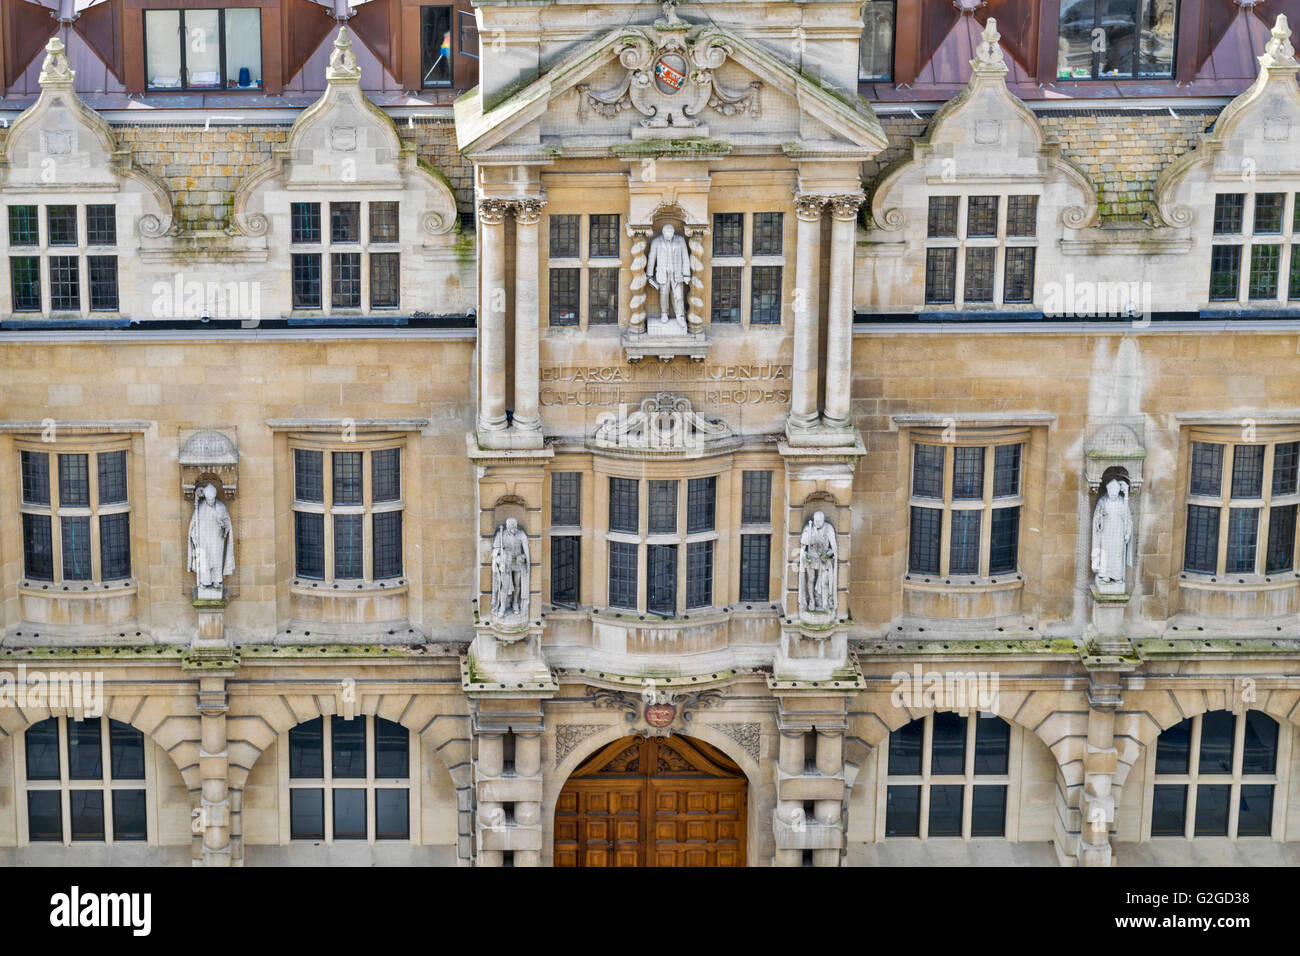 OXFORD CITY THE STATUES OF ORIEL COLLEGE CECIL RHODES LOOKS DOWN FROM THE TOP - Stock Image